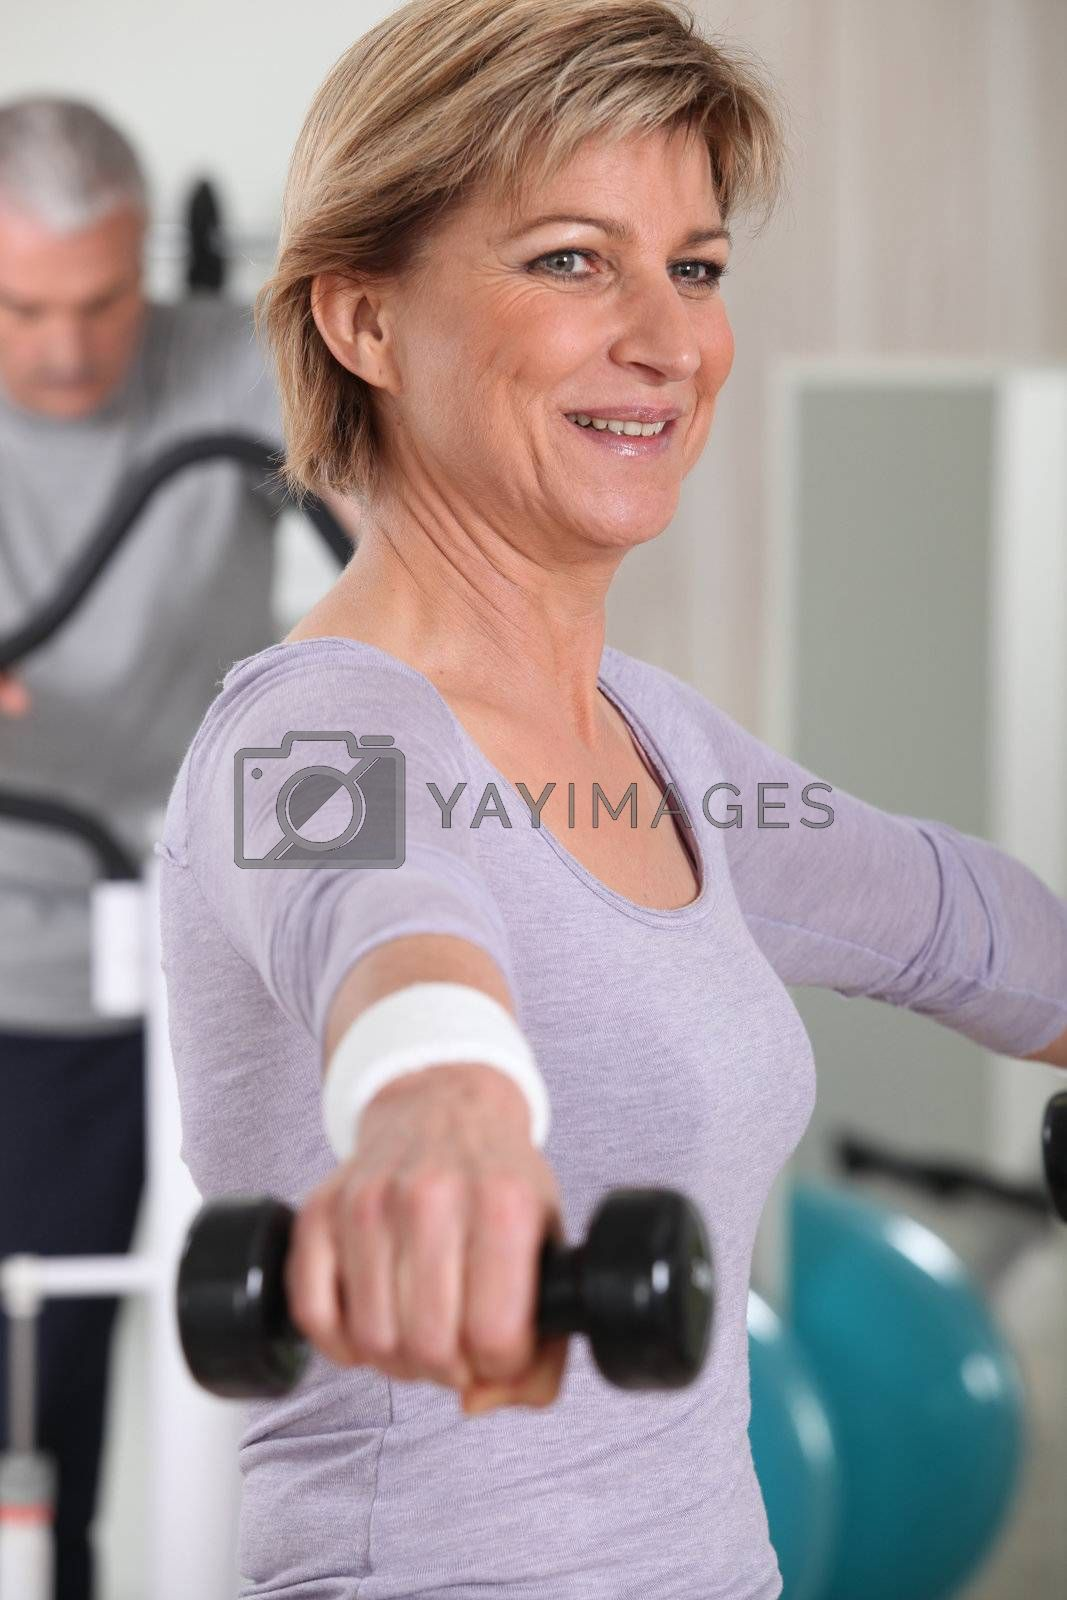 Older people in the gym